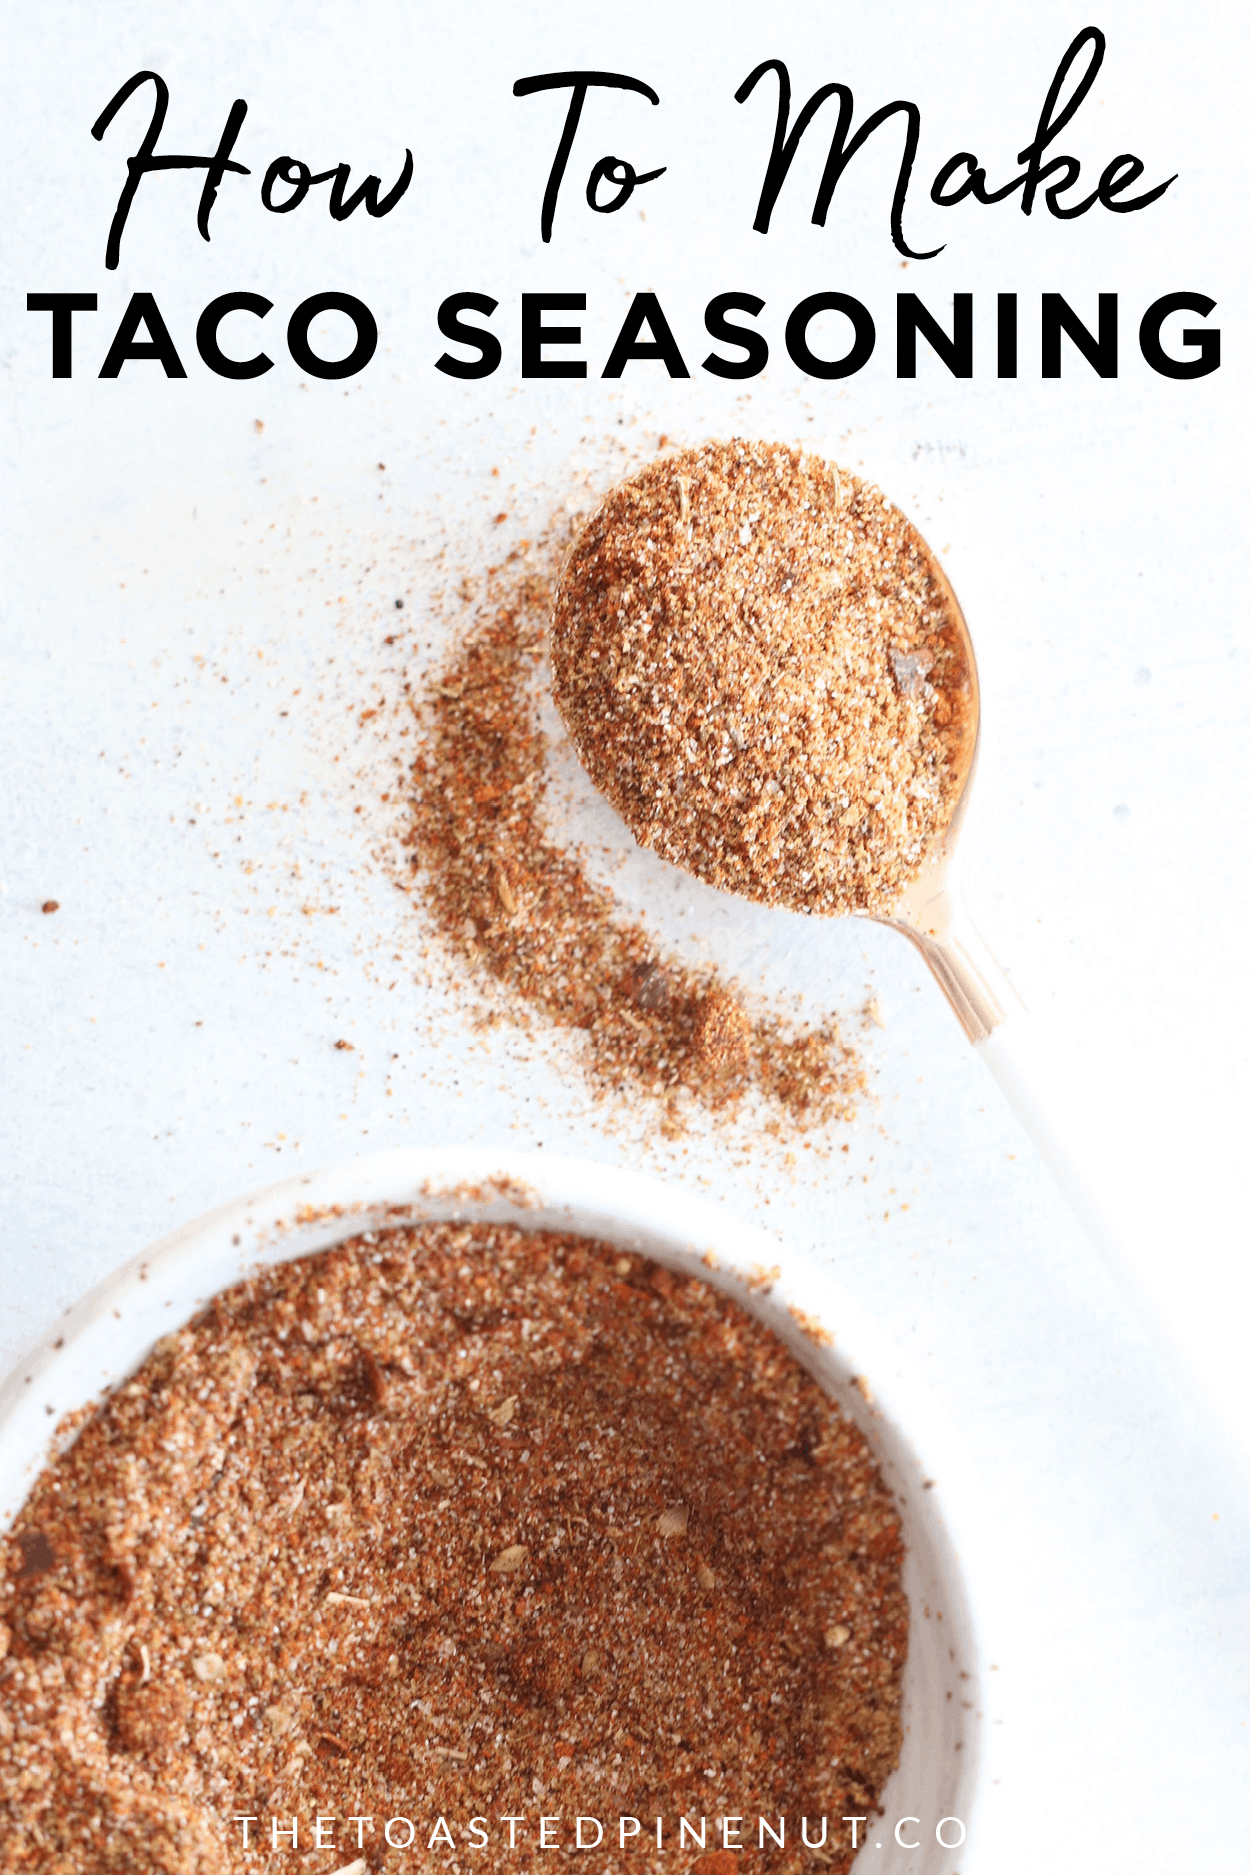 How to make: Taco Seasoning #maketacoseasoning Ditch store bought taco seasoning packets and make your own! Enjoy this super fun and easy DIY homemade taco seasoning recipe! thetoastedpinenut.com #taco #tacoseasoning #healthy #diy #homemade #recipe #diytacoseasoning